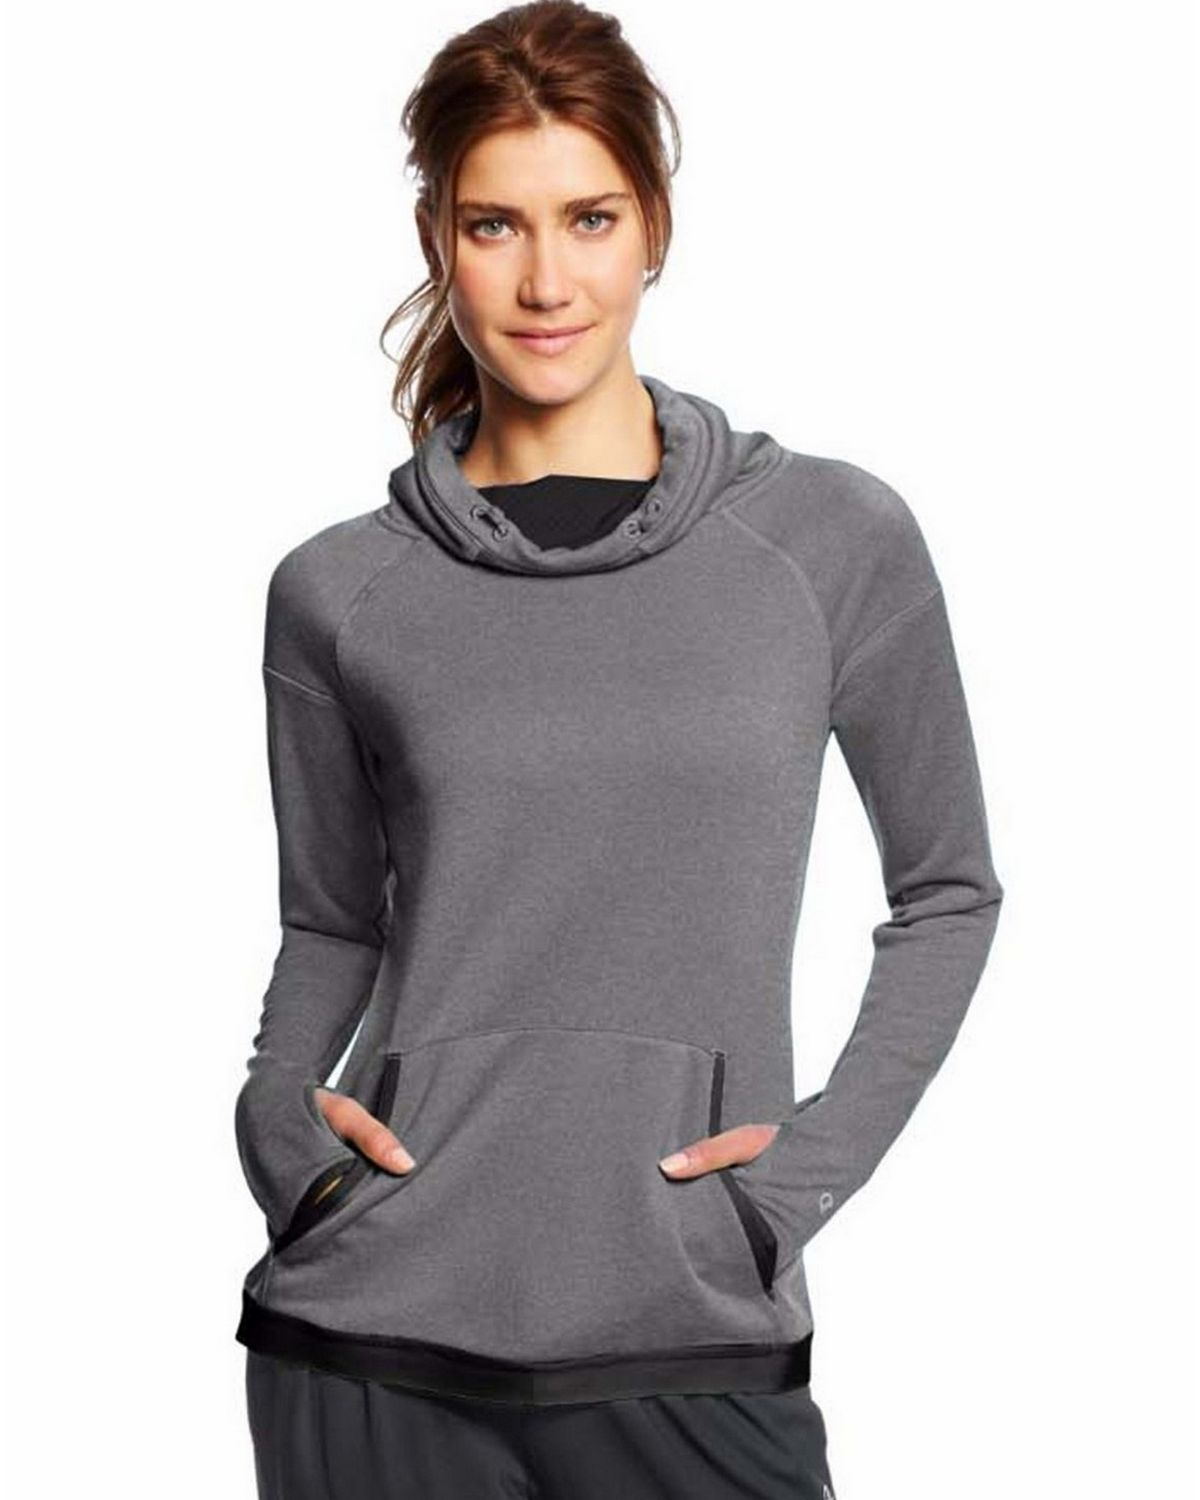 Champion W0995 Training Cover-Up - Granite Heather/Black - XL W0995